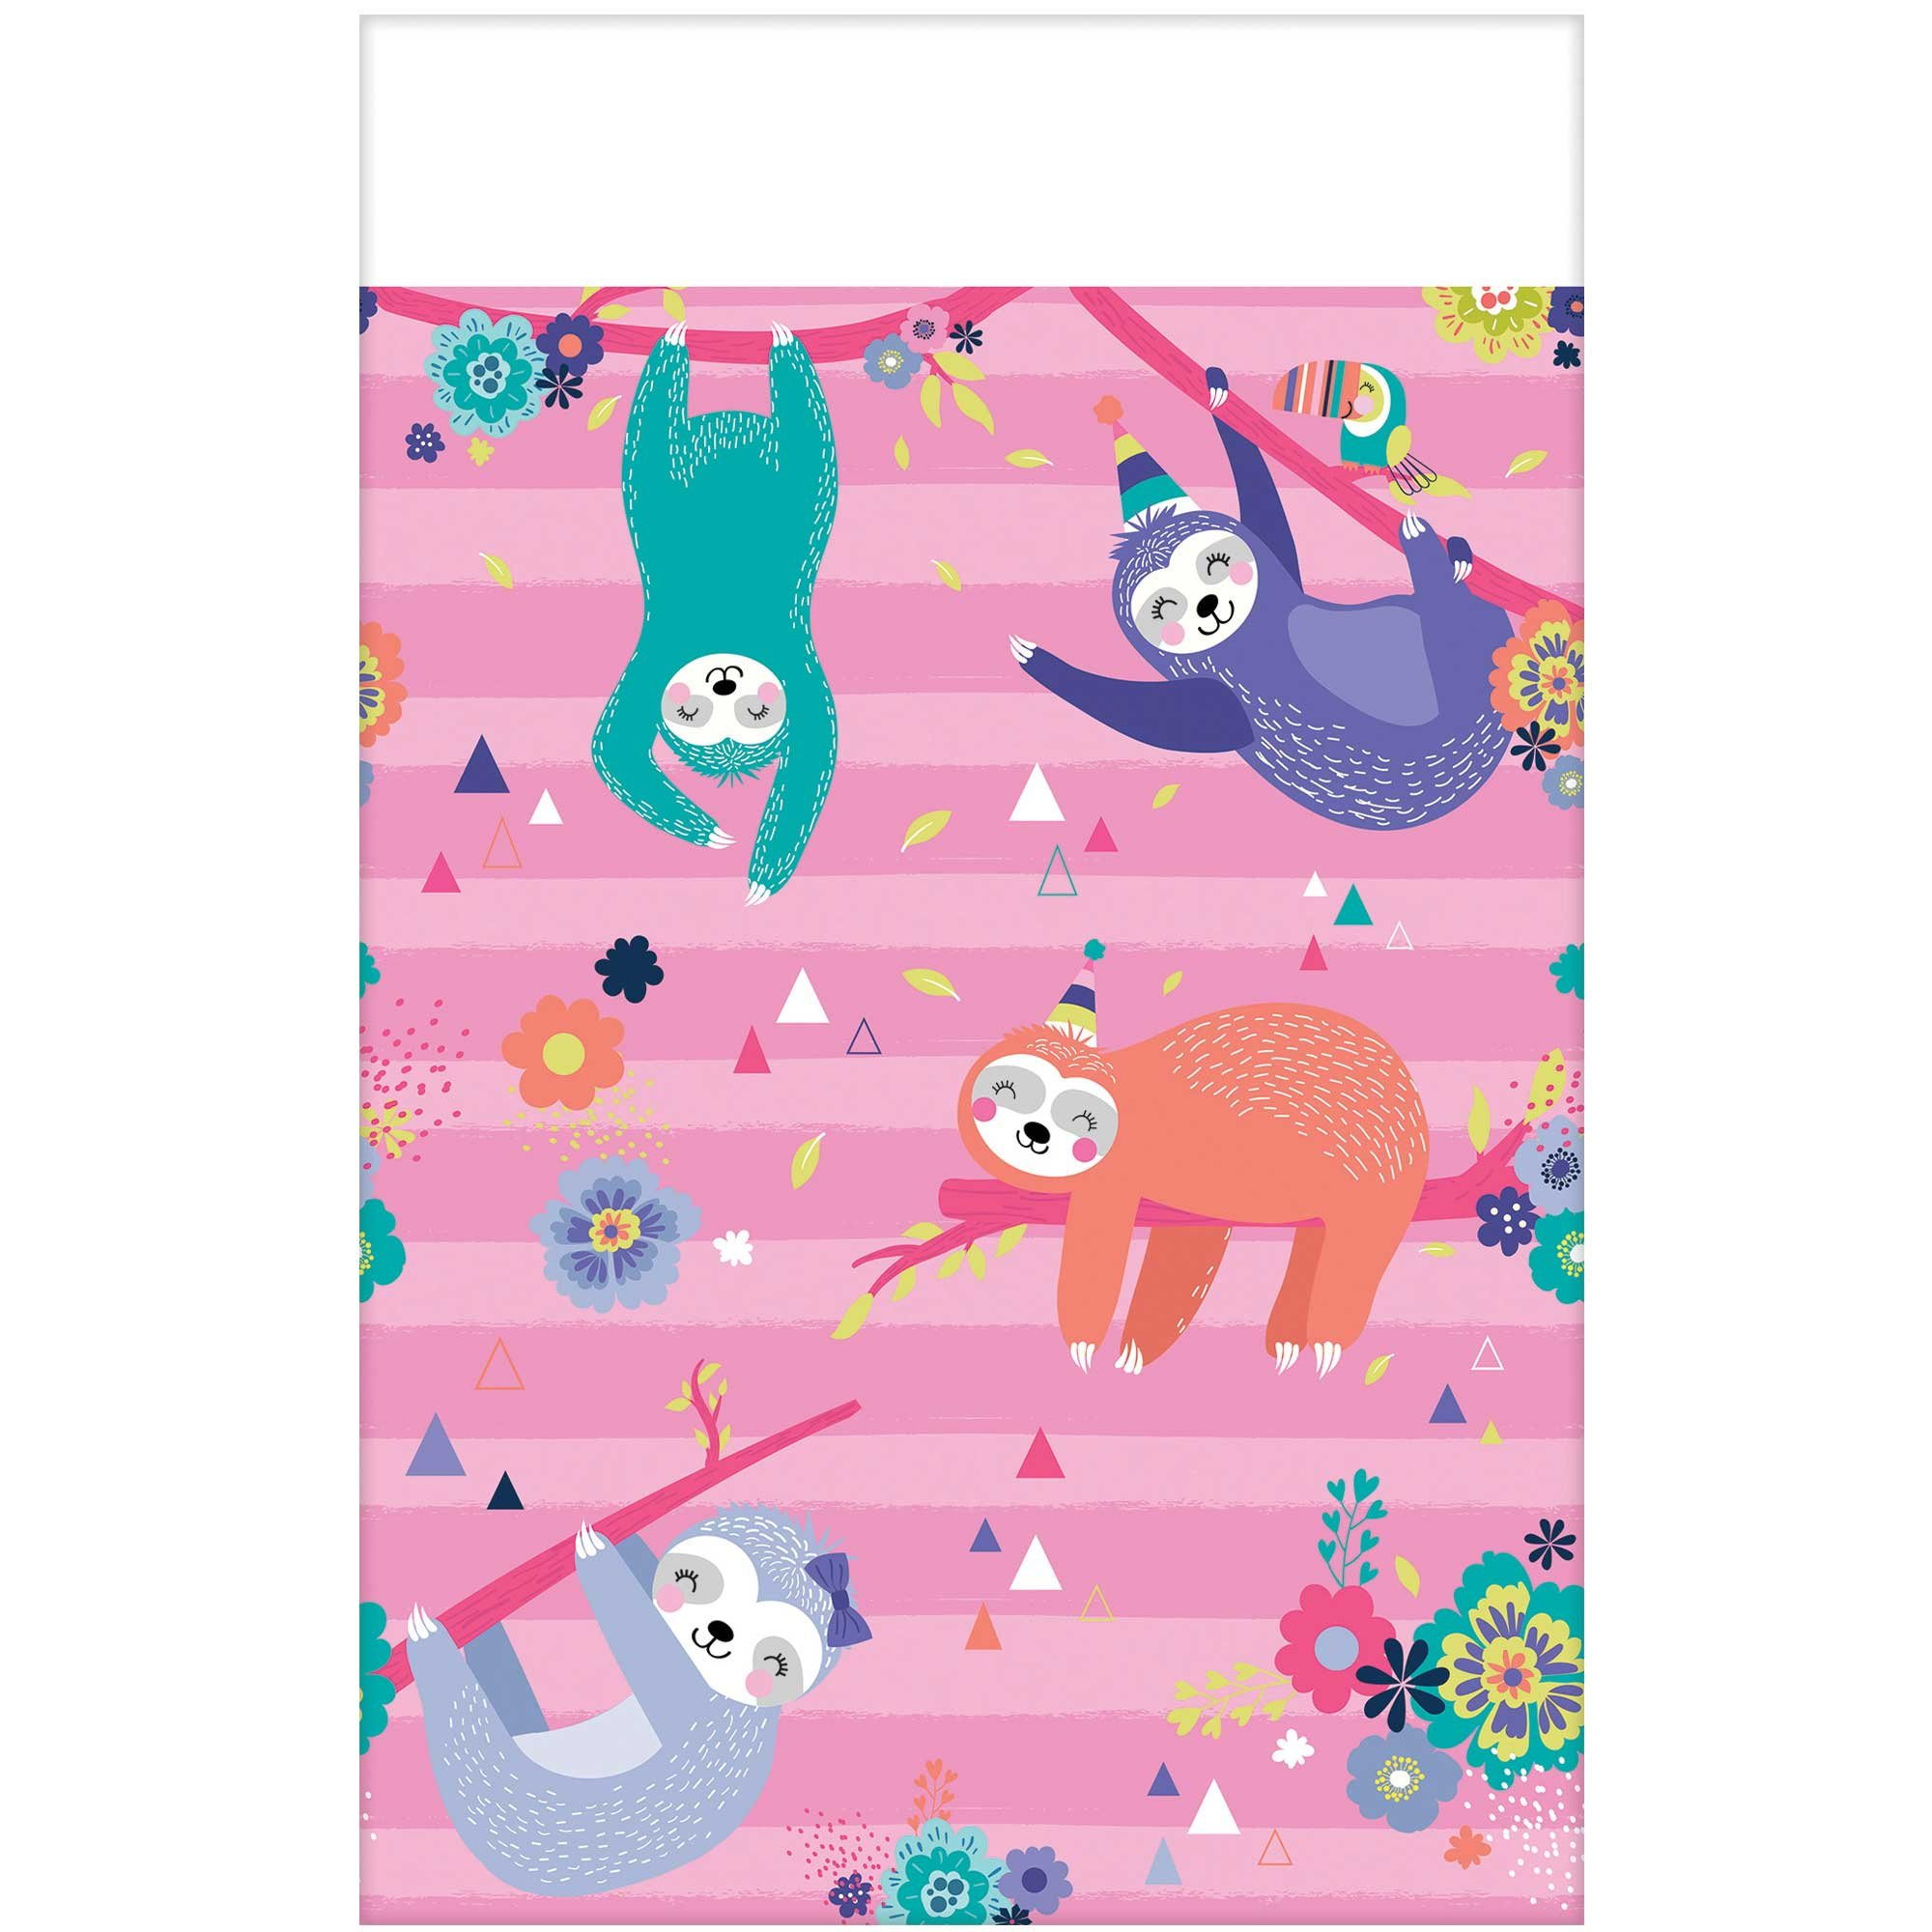 Sloth Paper Tablecover